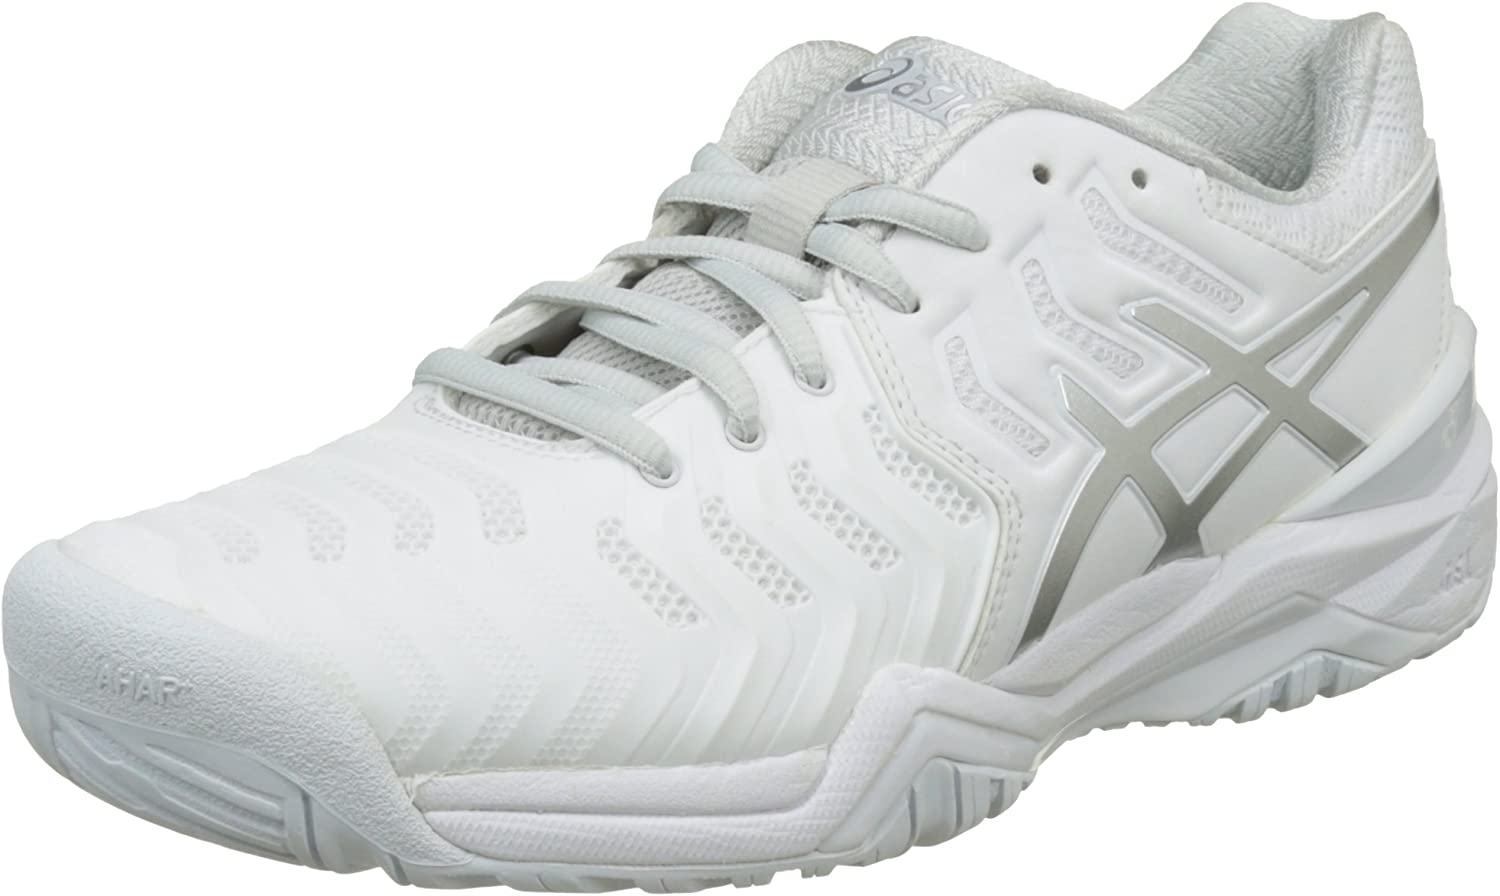 ASICS Gel-Resolution 7 Ladies Tennis shoes White Silver